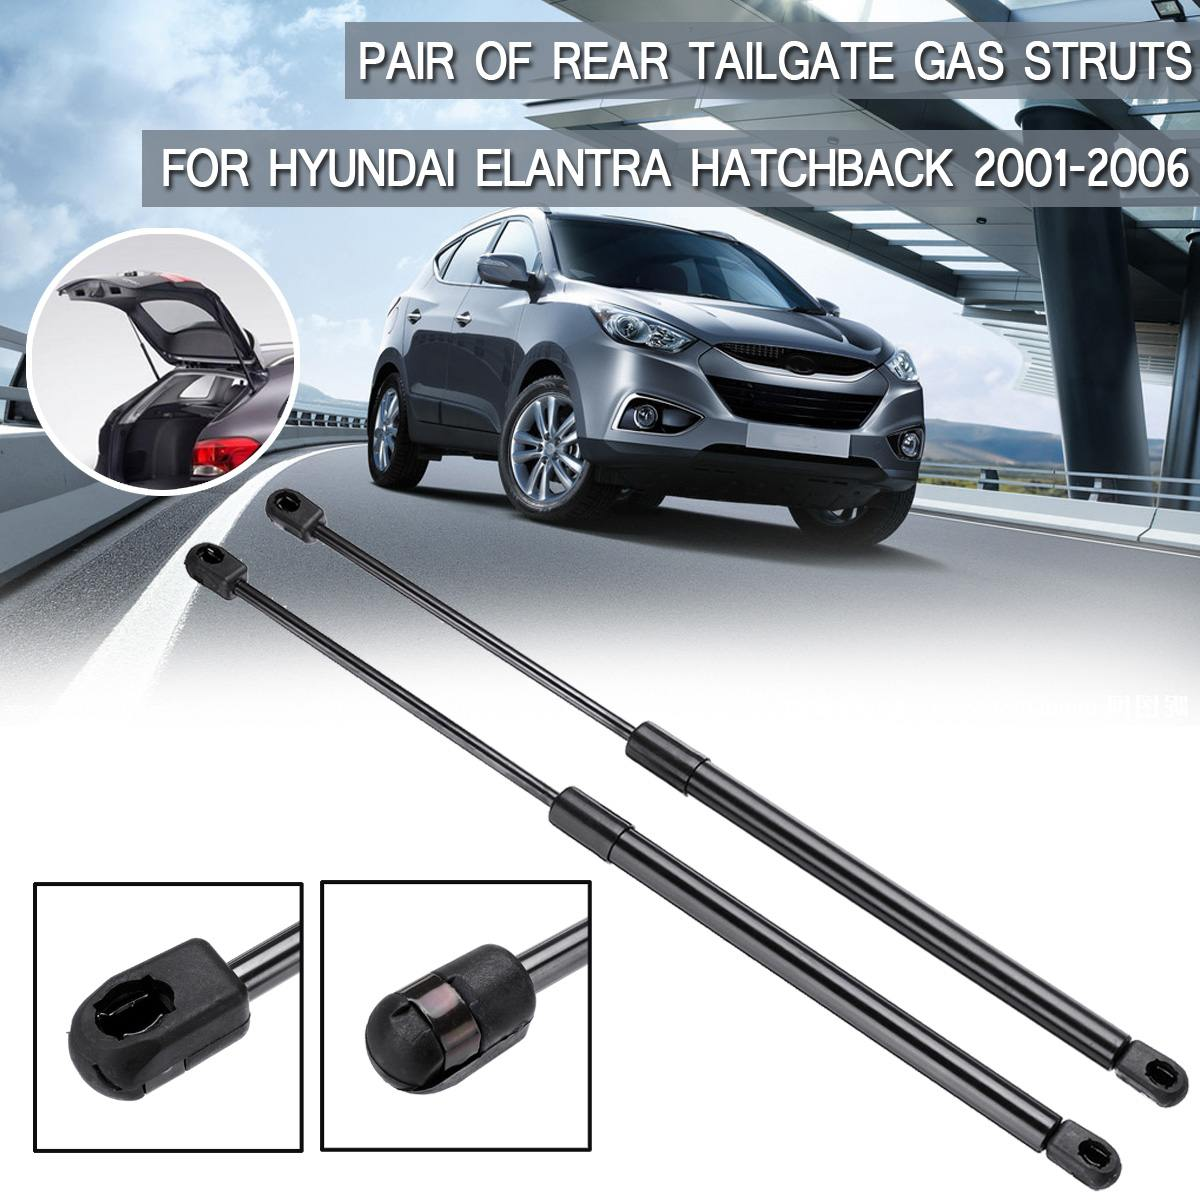 Pair Rear Tailgate Lift Support Gas Struts Gas Springs For Hyundai Elantra Hatchback 2001 2002 2003 2004 2005 2006 81771-2D211